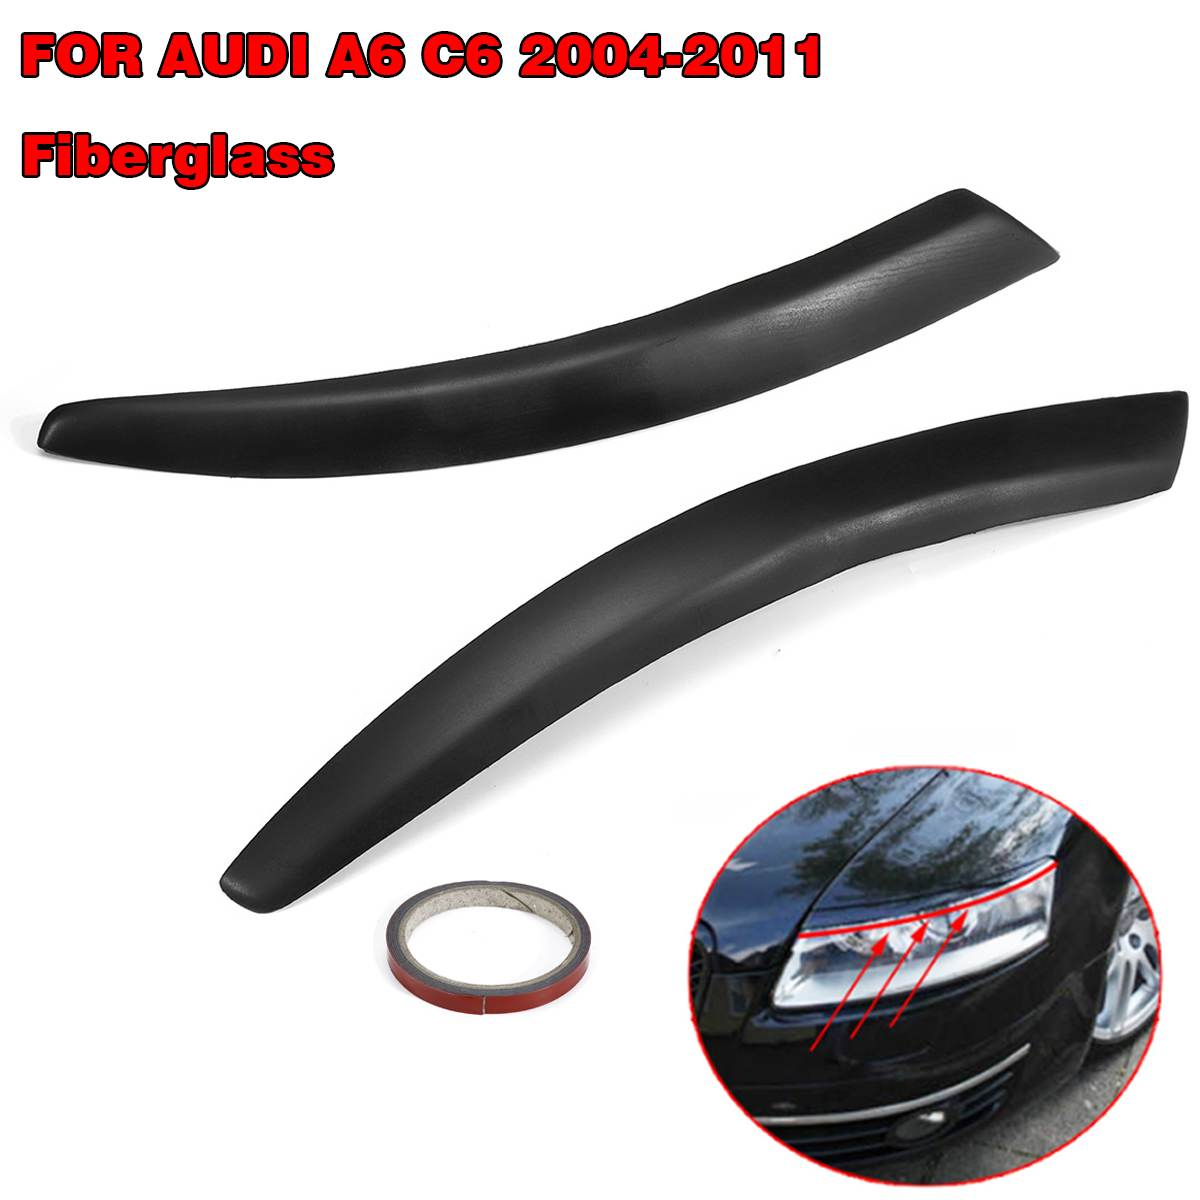 Pair Car Headlight Eyebrow Cover Trim Sticker Fiberglass Head Lamp Eyelid Auto Accessories For Audi A6 C6 2004 2011-in Car Stickers from Automobiles & Motorcycles